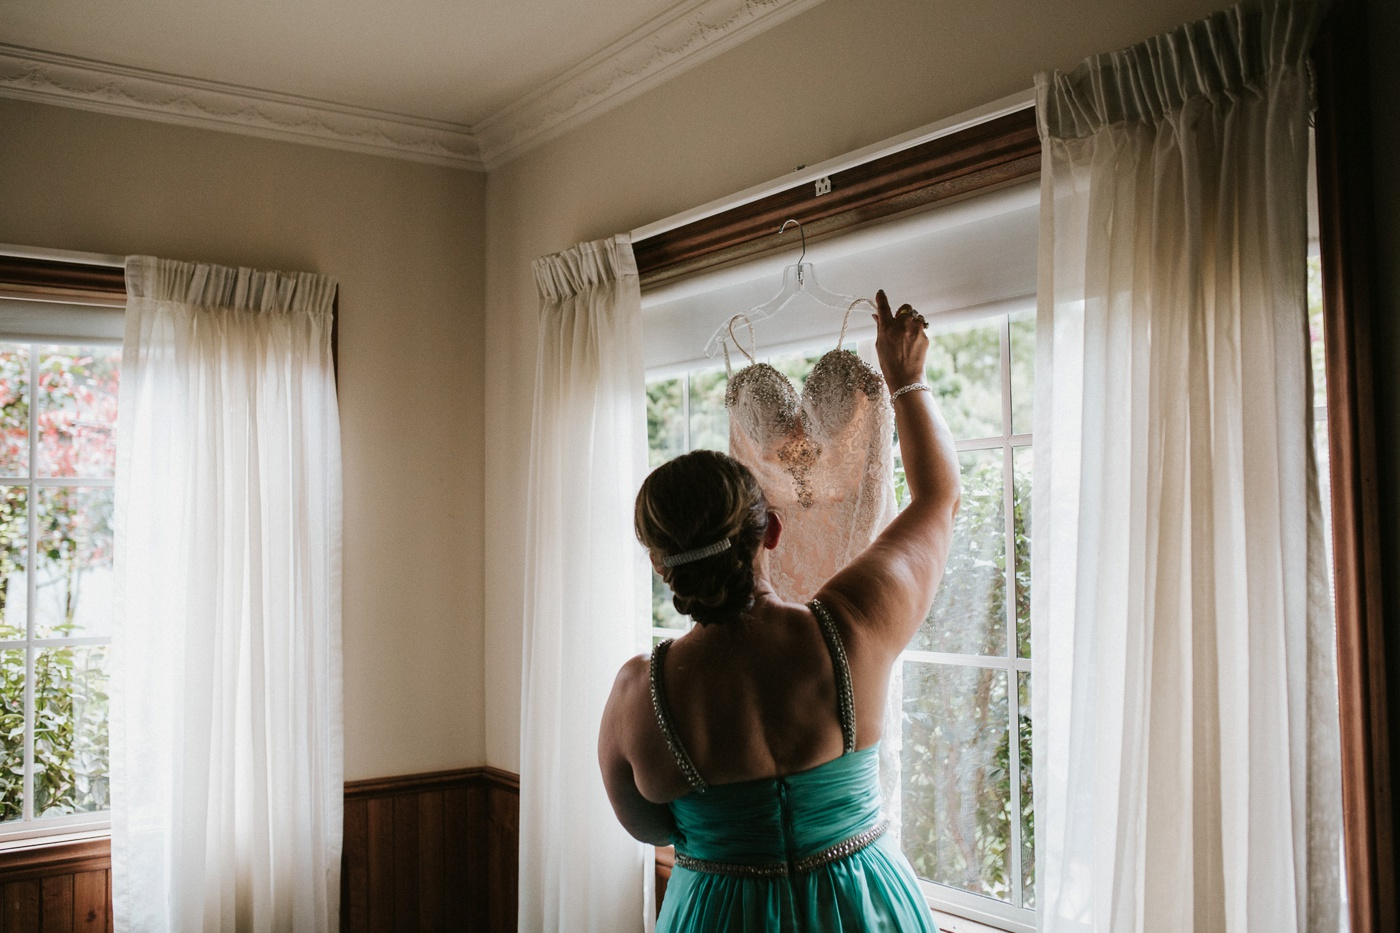 wesleybianca_dandenongs-sherbrooke-poets-lane-wedding_melbourne-quirky-fun-candid-wedding-photography_14